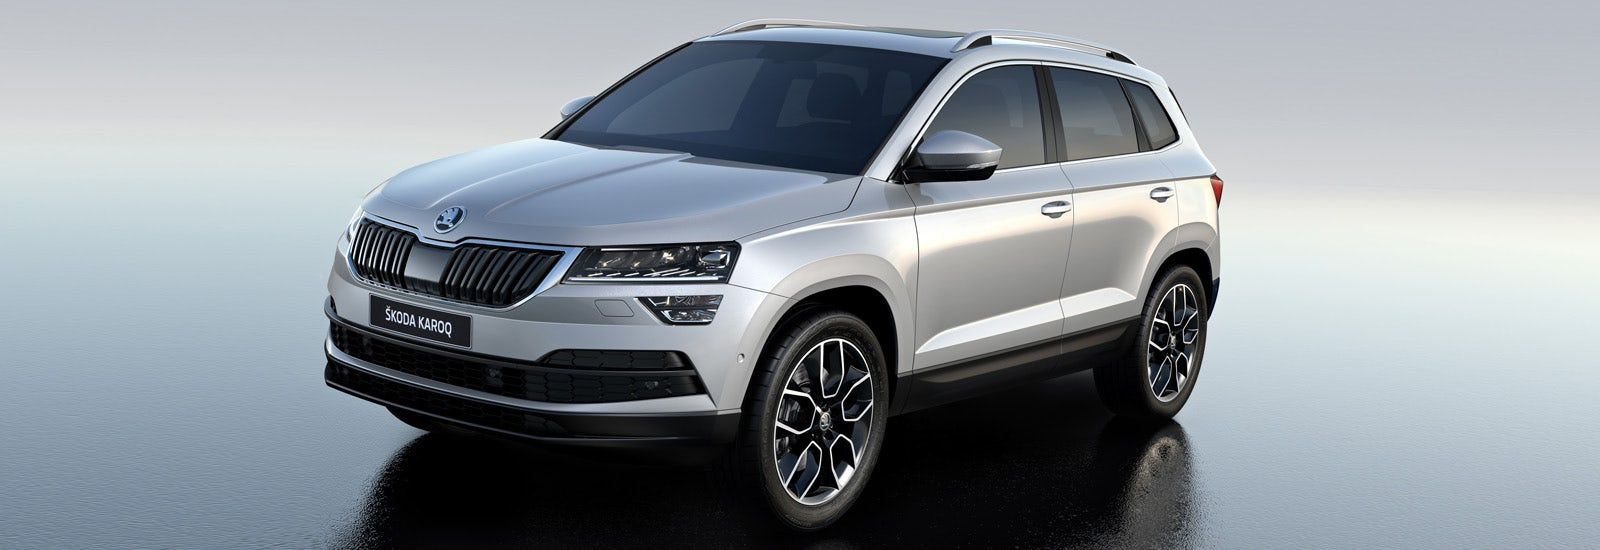 2018 skoda karoq new yeti suv price specs release date carwow. Black Bedroom Furniture Sets. Home Design Ideas